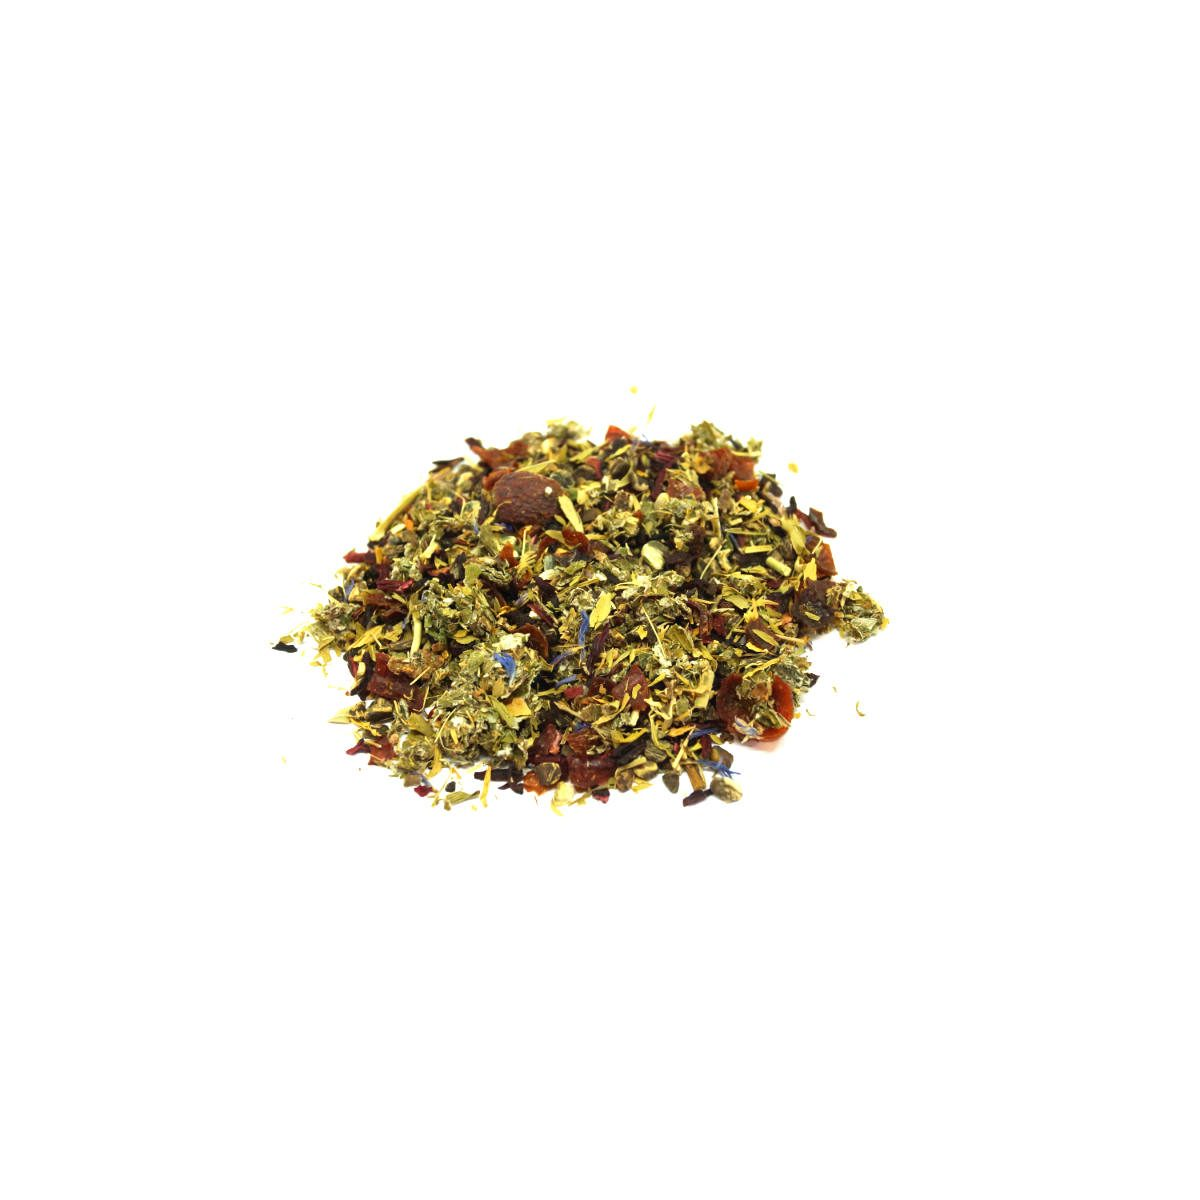 Baby Delivery Aid Blend -This combination of herbs helps during her last two weeks of their pregnancy to start getting the body ready for delivery.